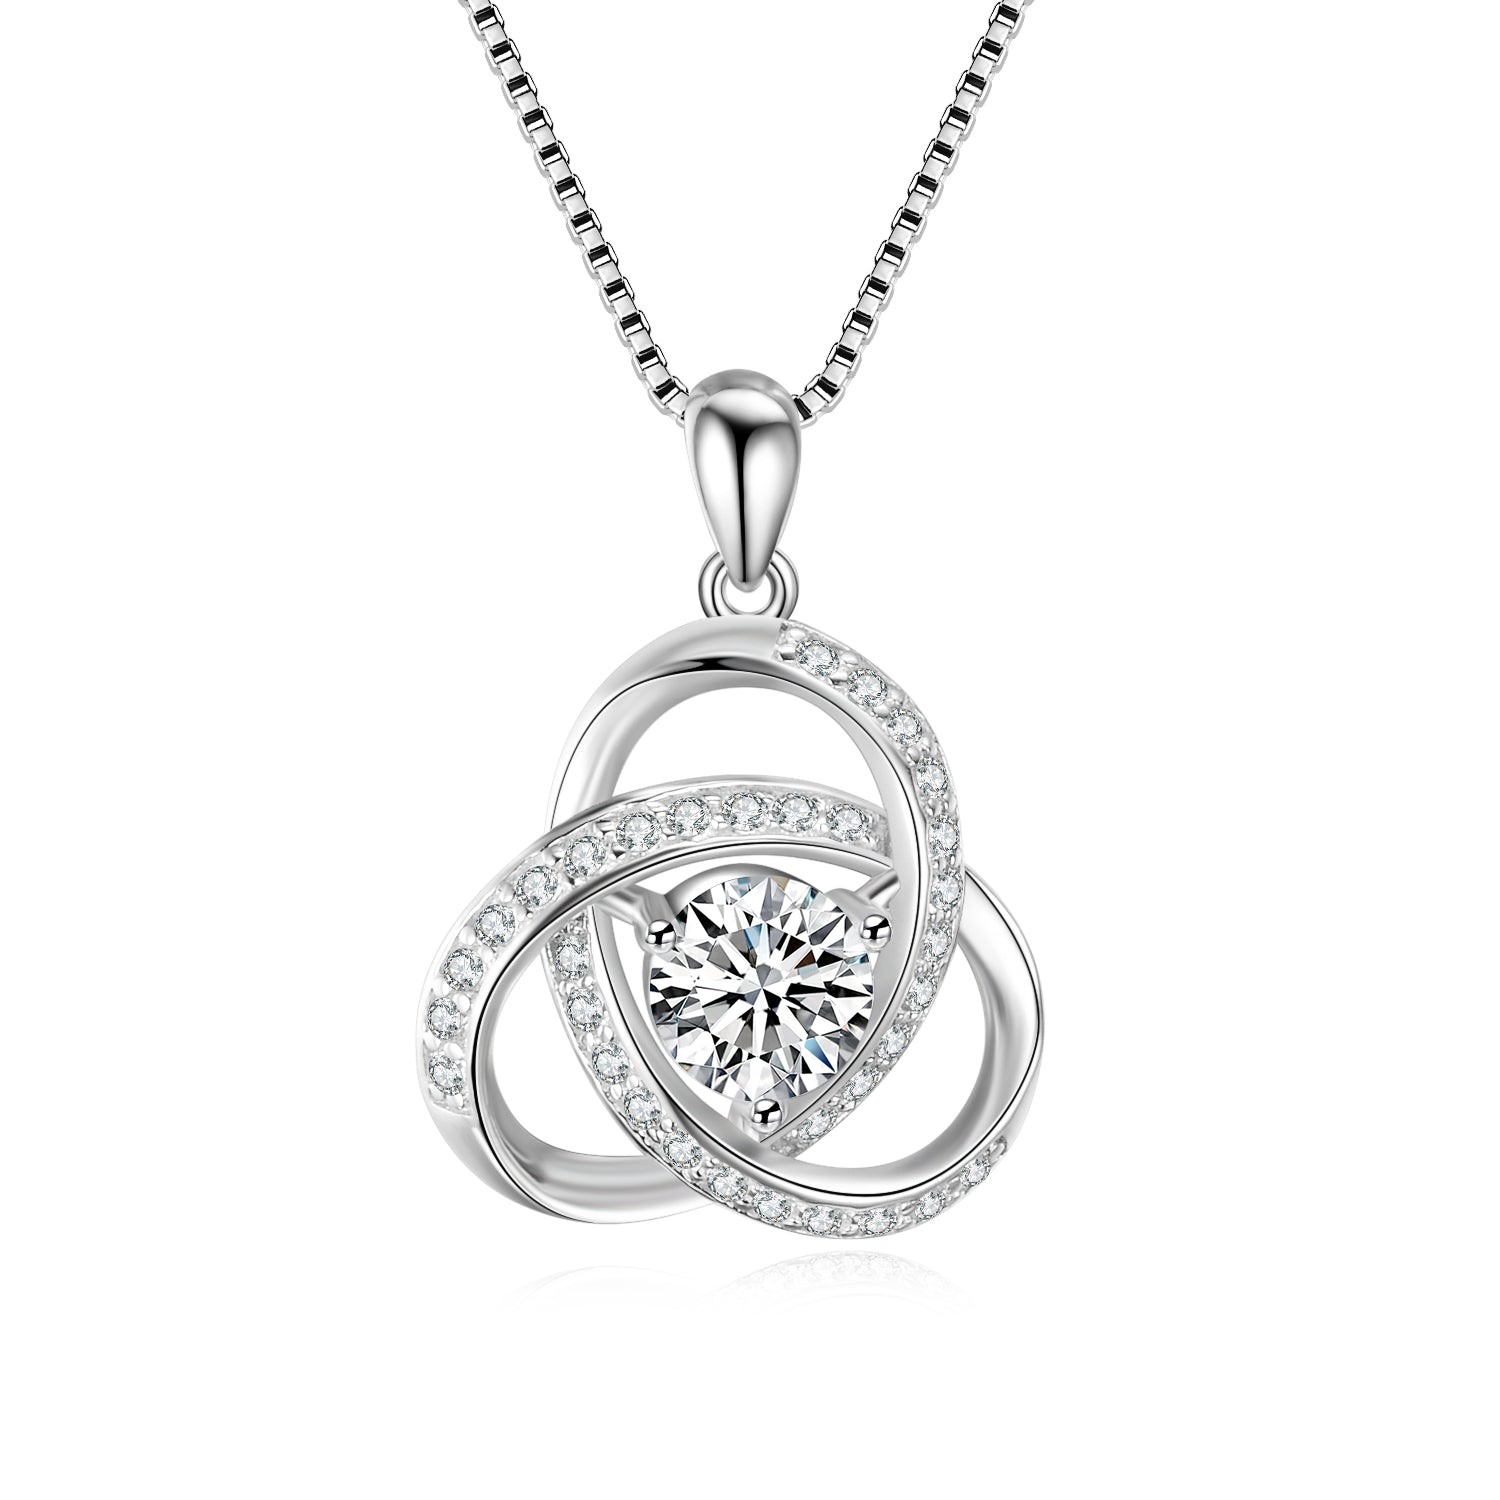 Manufacturer Professional 925 Sterling Silver Chain Necklaces Celtic Knot Pendant Necklaces